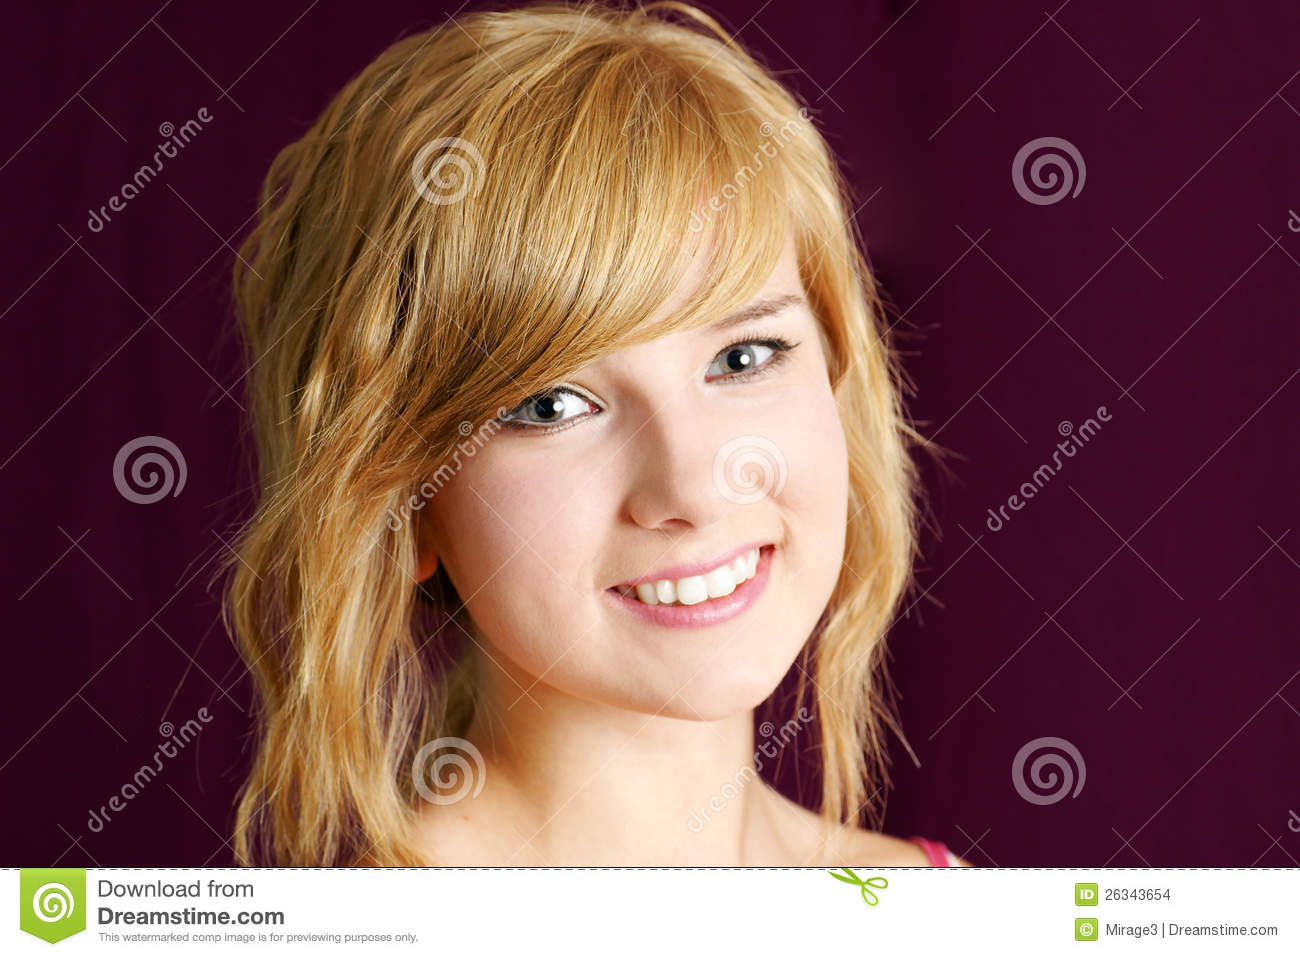 Friendly Blond Teenager Girl Smiling